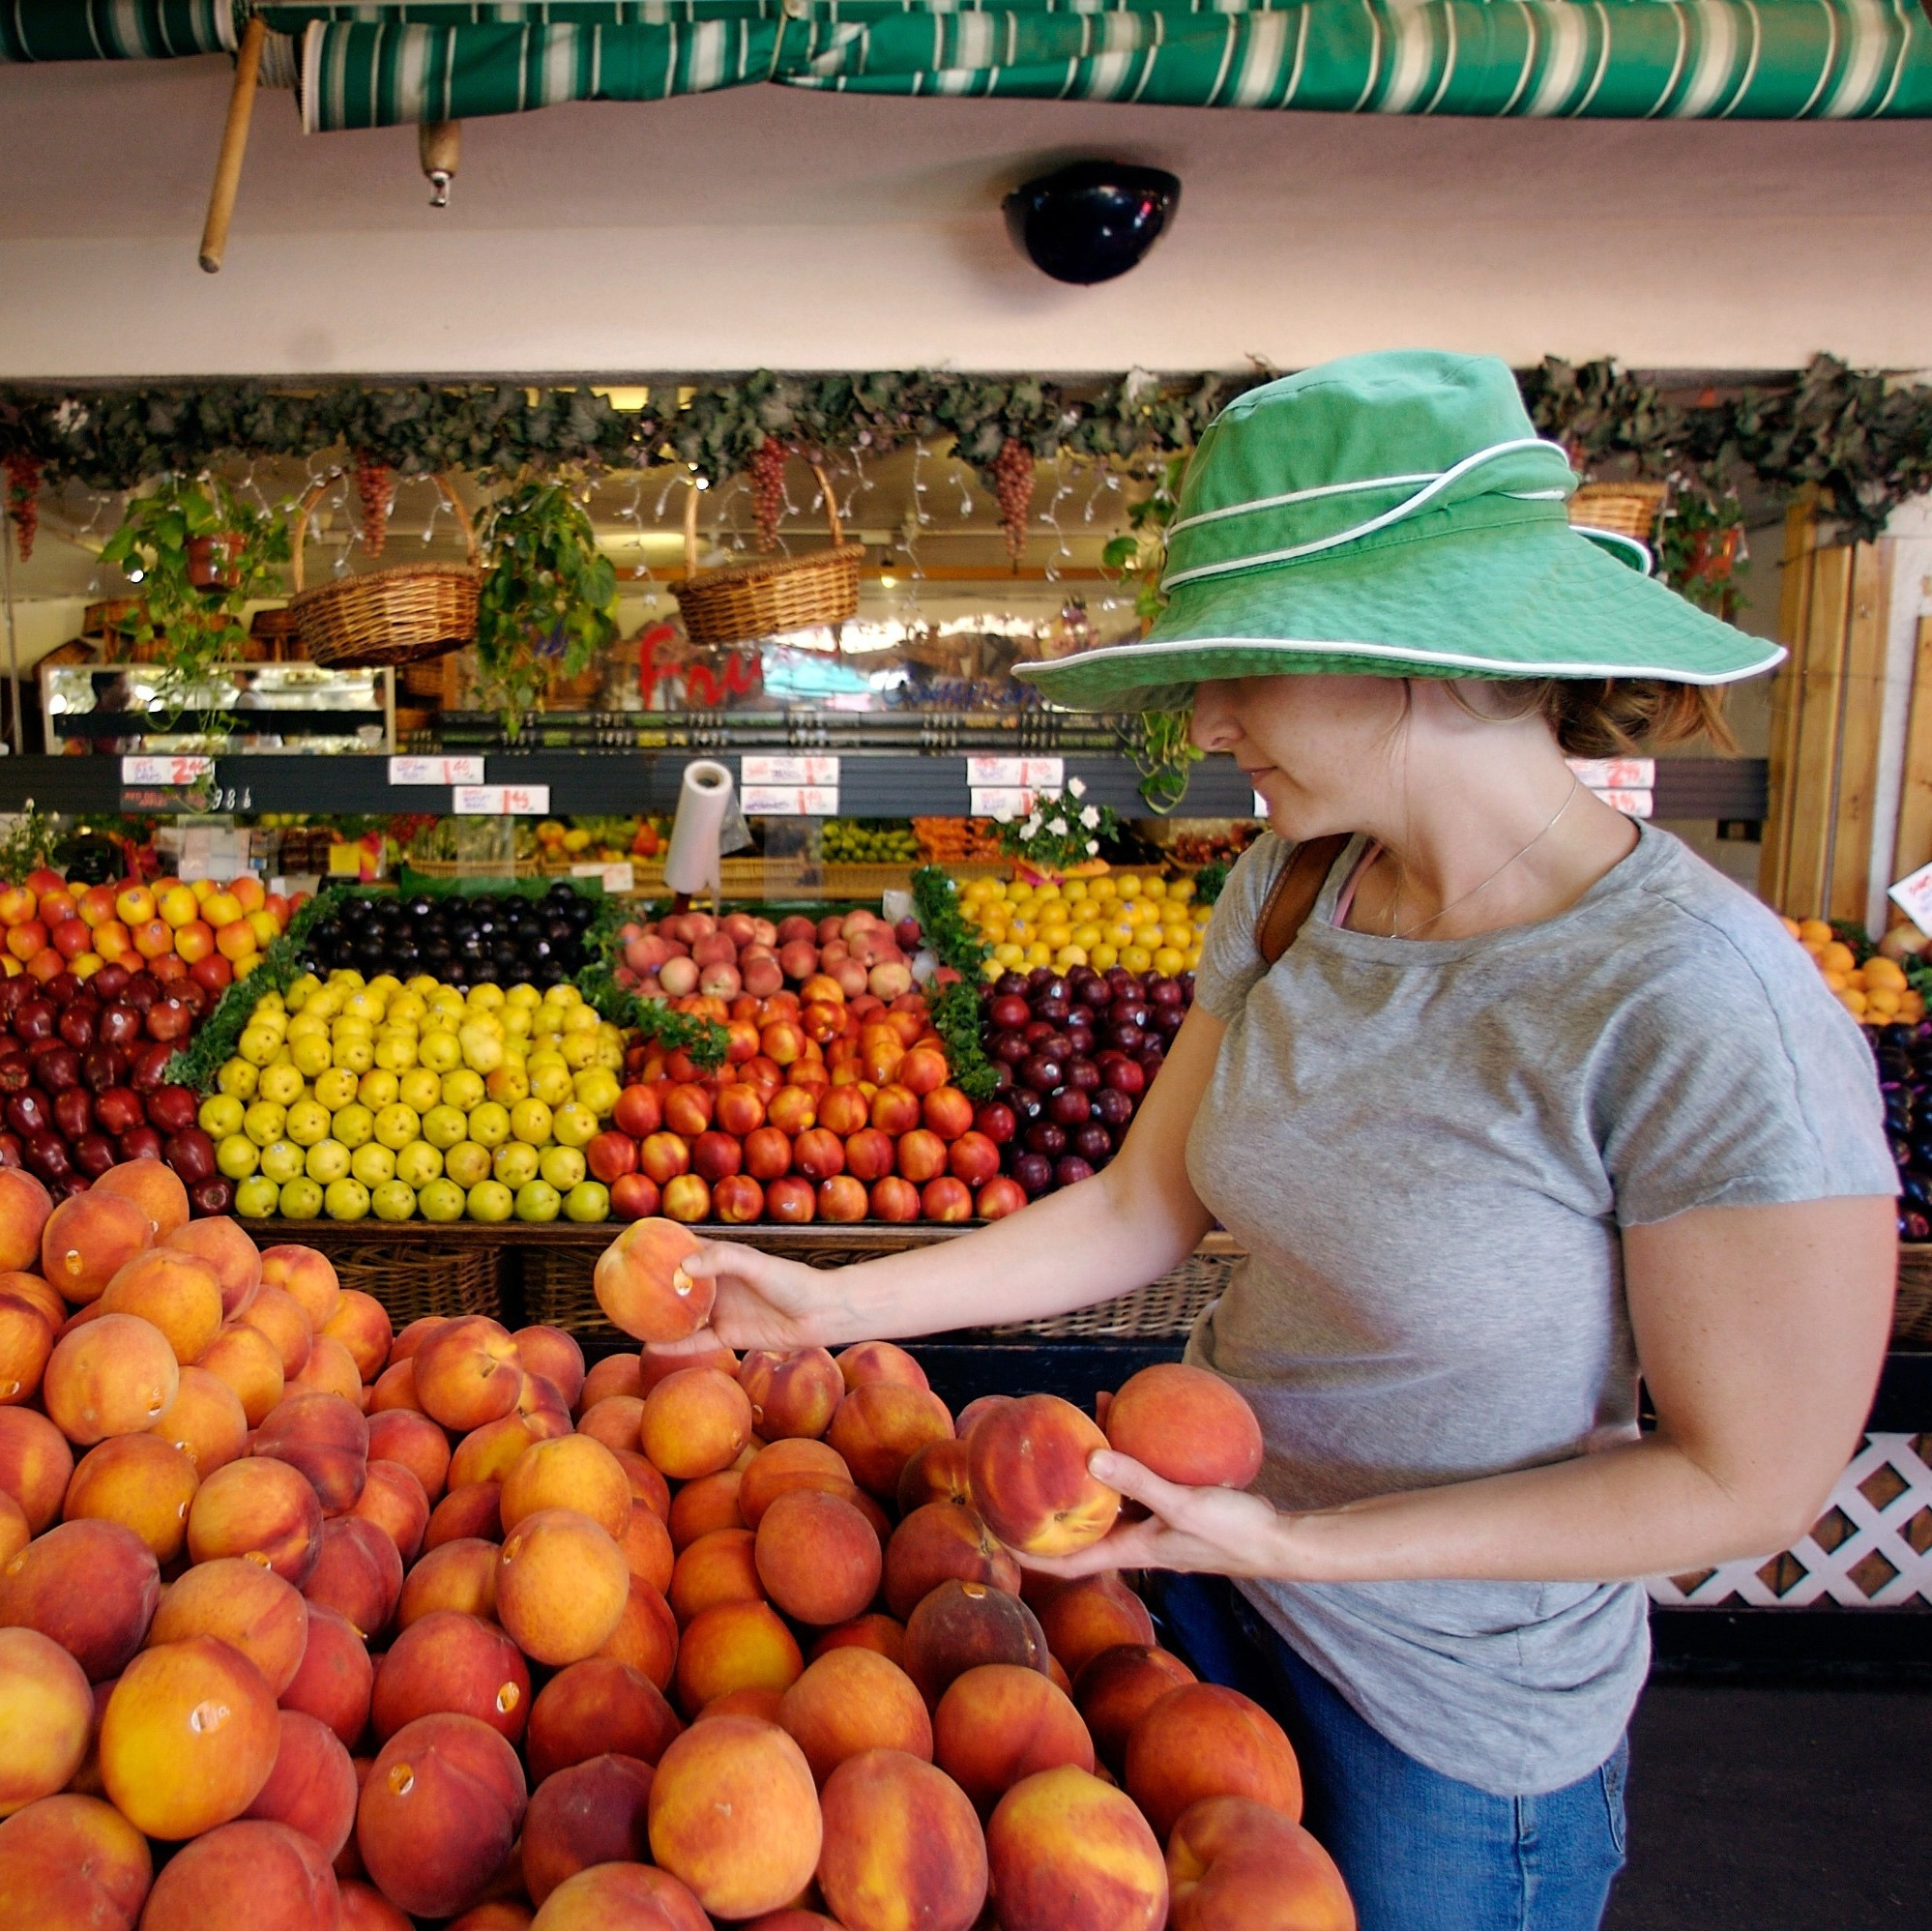 Tara Igoe shops for sweet California peaches at a fresh produce stand at the Farmers Market in Los Angeles, August 2007.